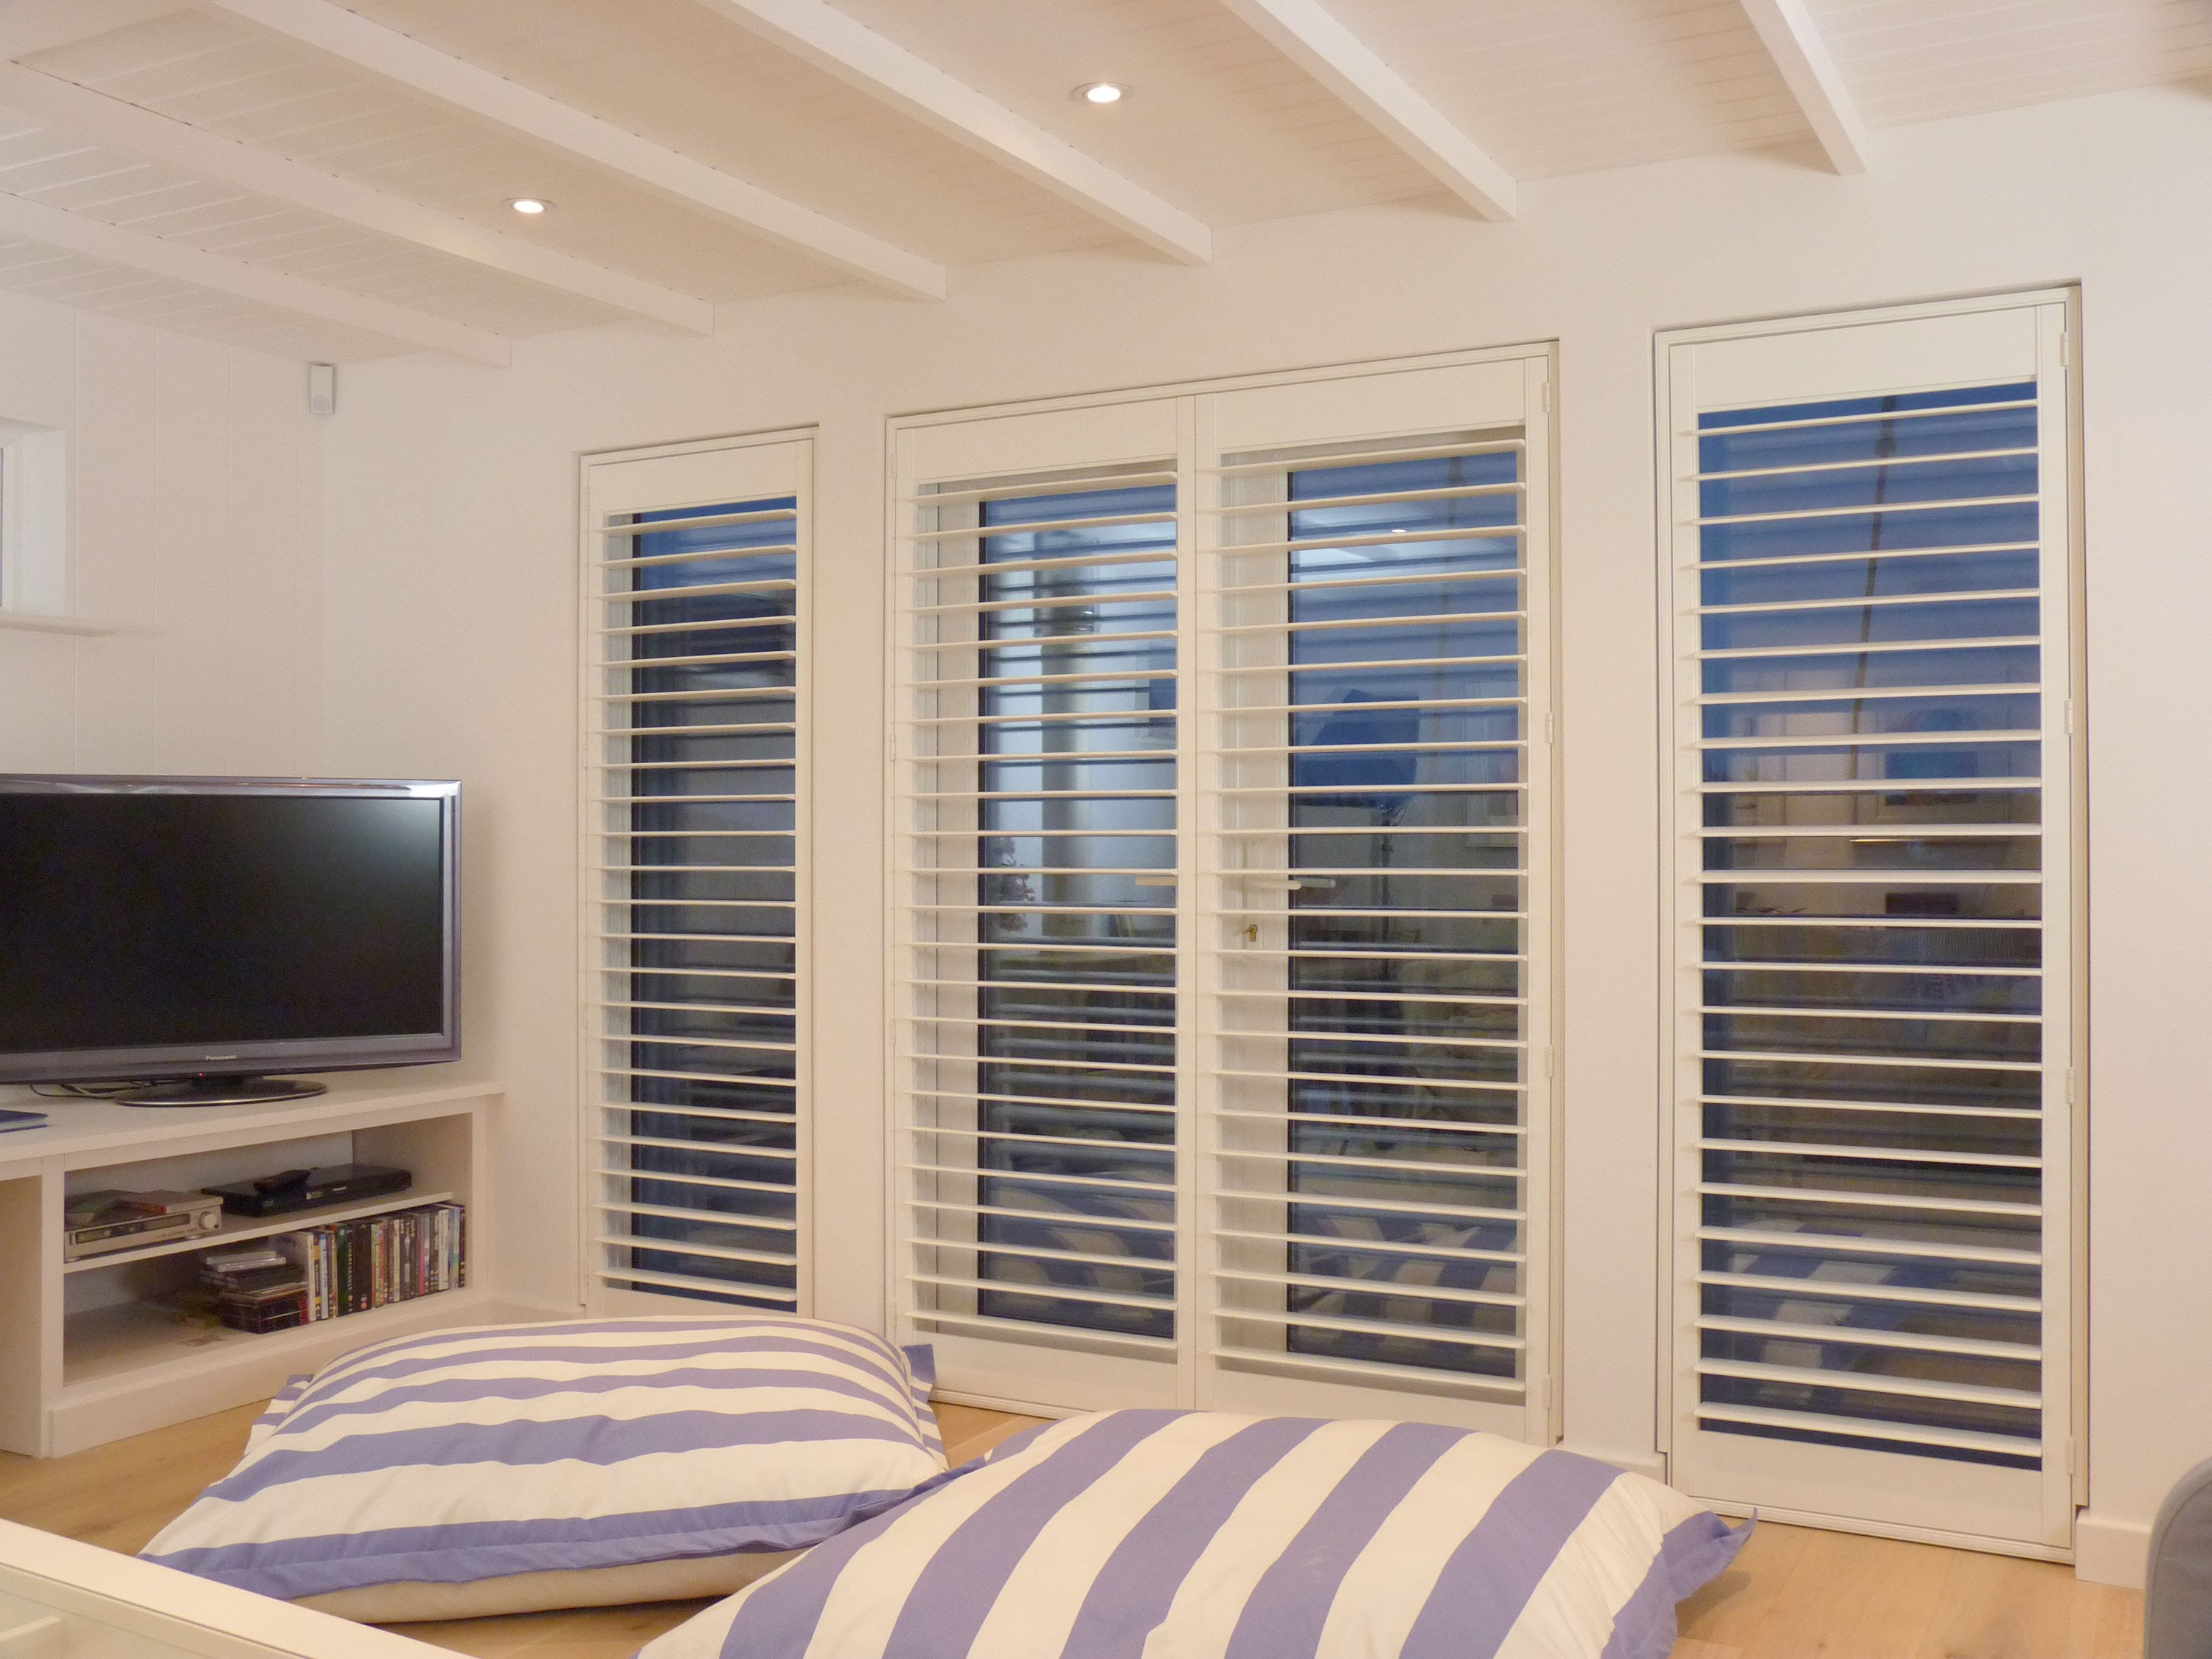 plantation shutter plantation shutters guide - top 5 window shutter designs - youtube UCZCKYG